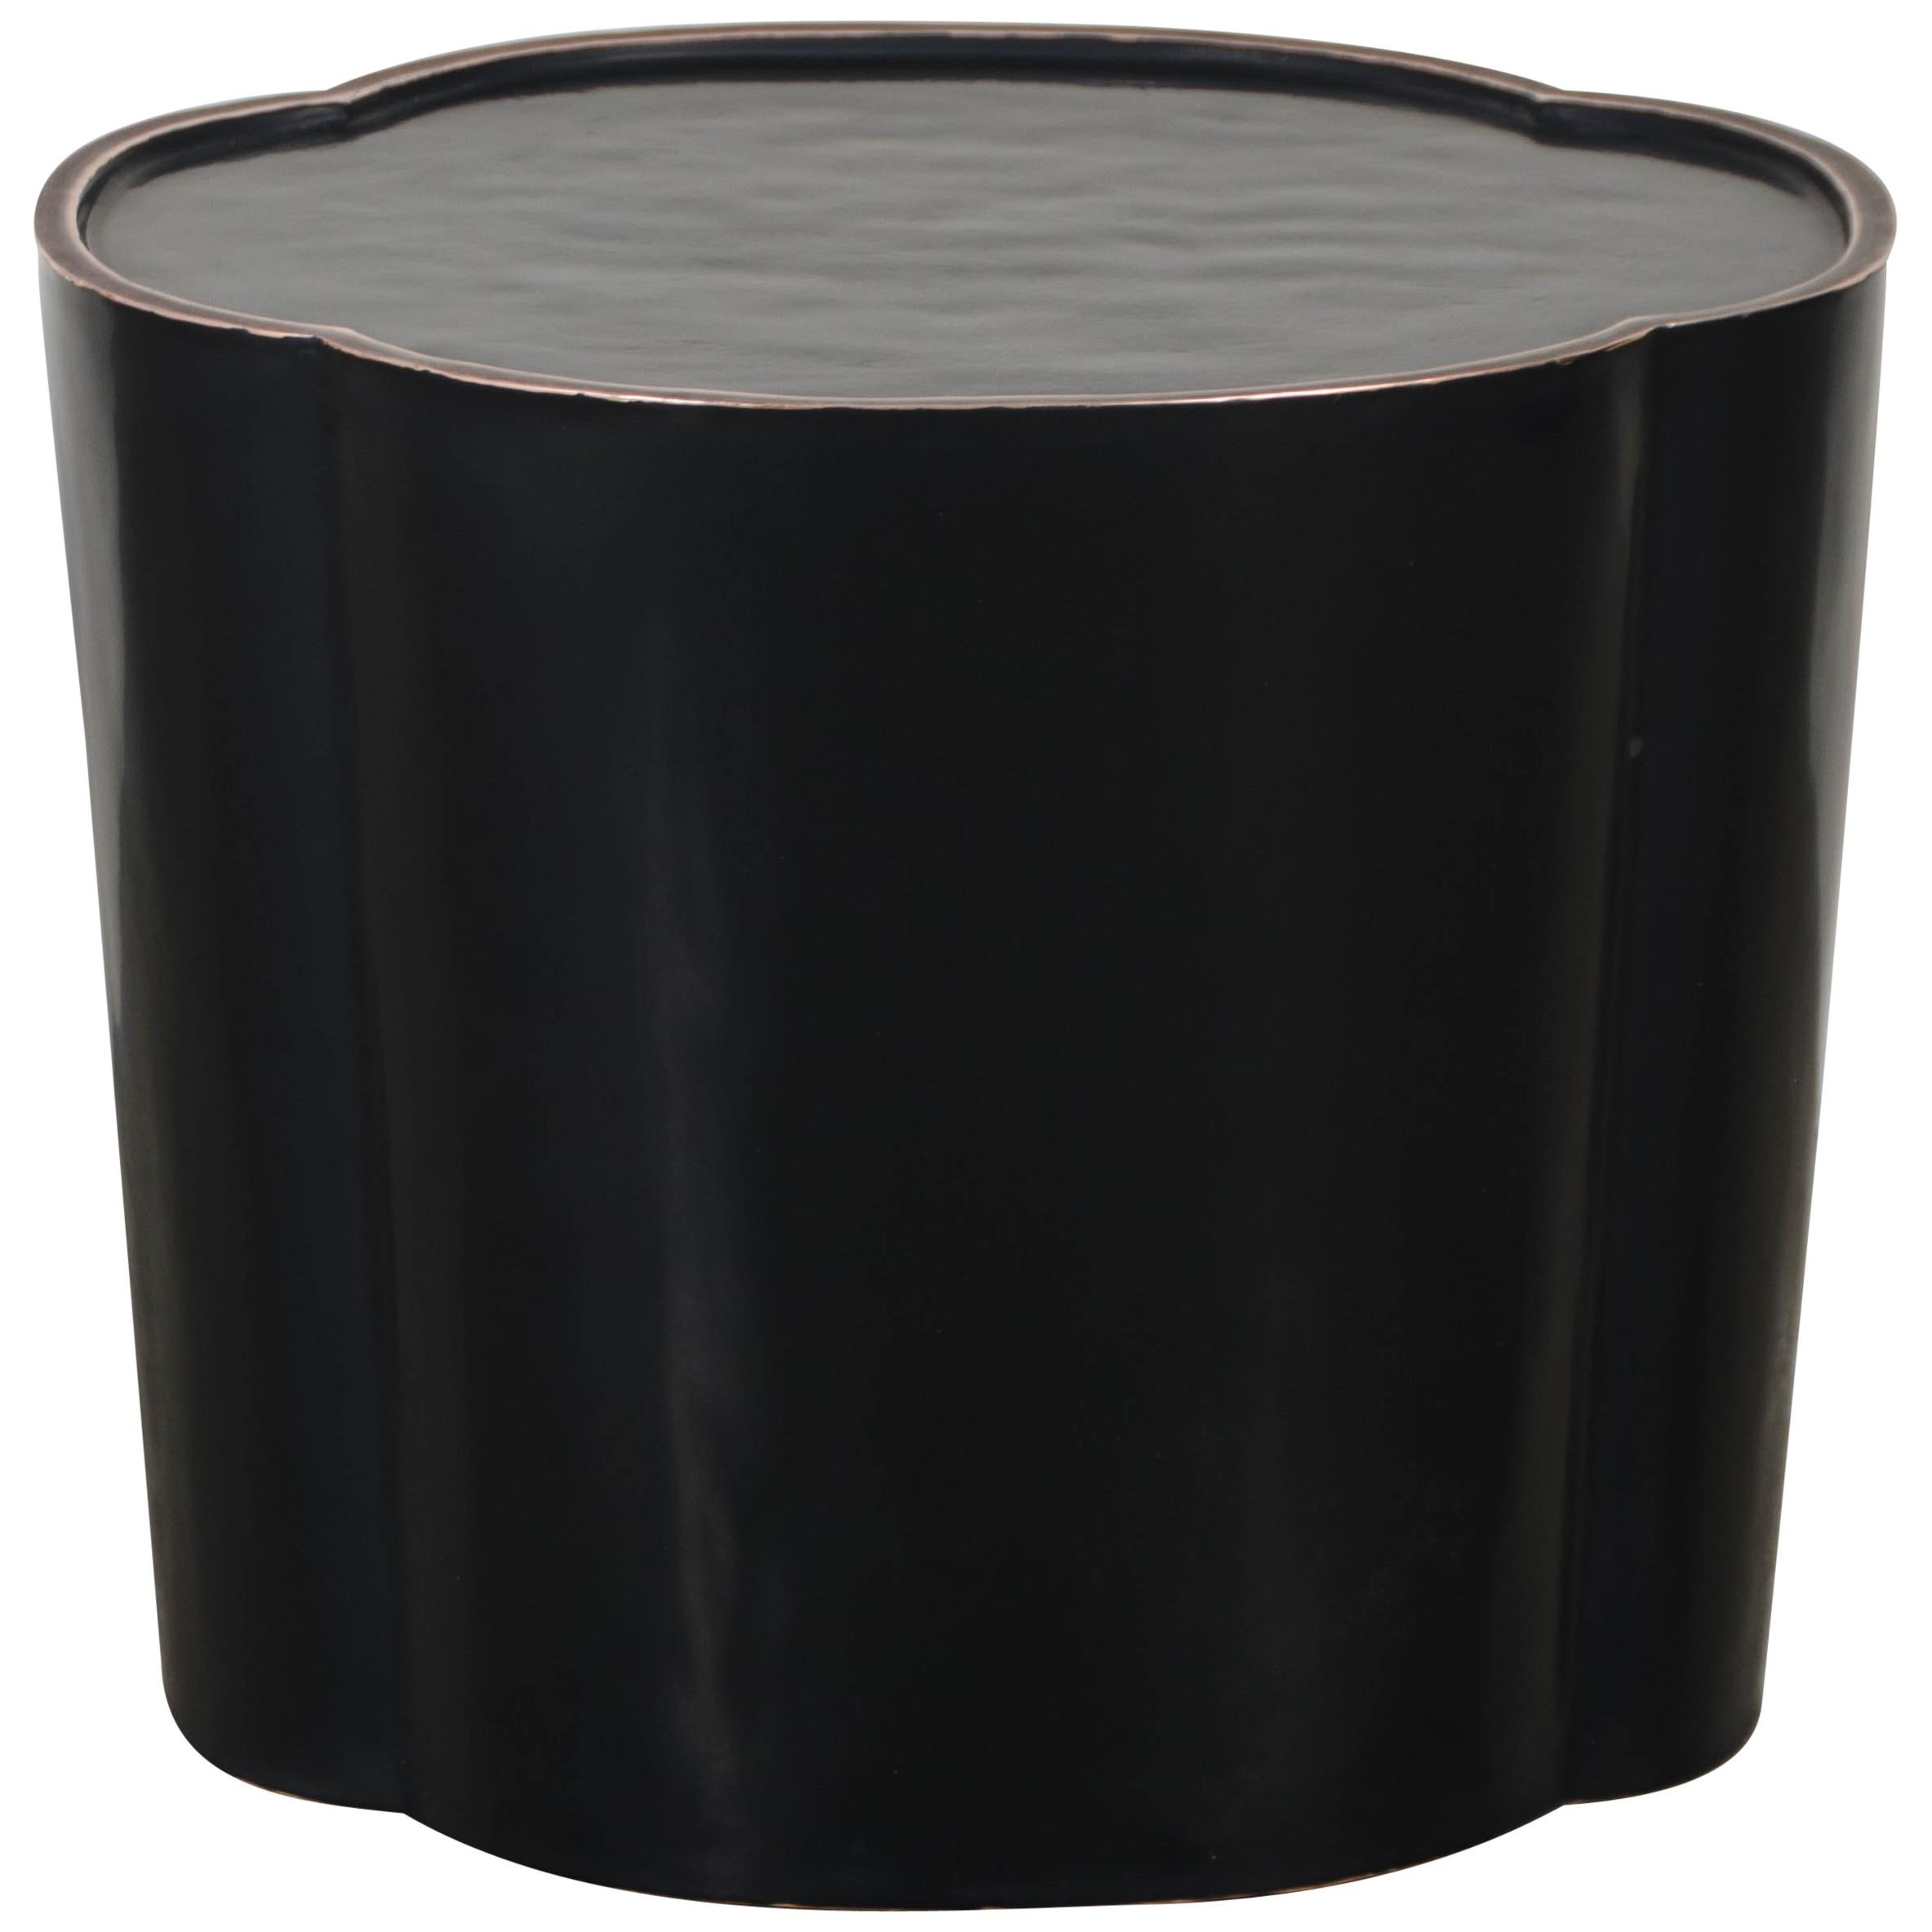 High Tang Drumstool - Black Lacquer by Robert Kuo, Hand Repousse, Limited